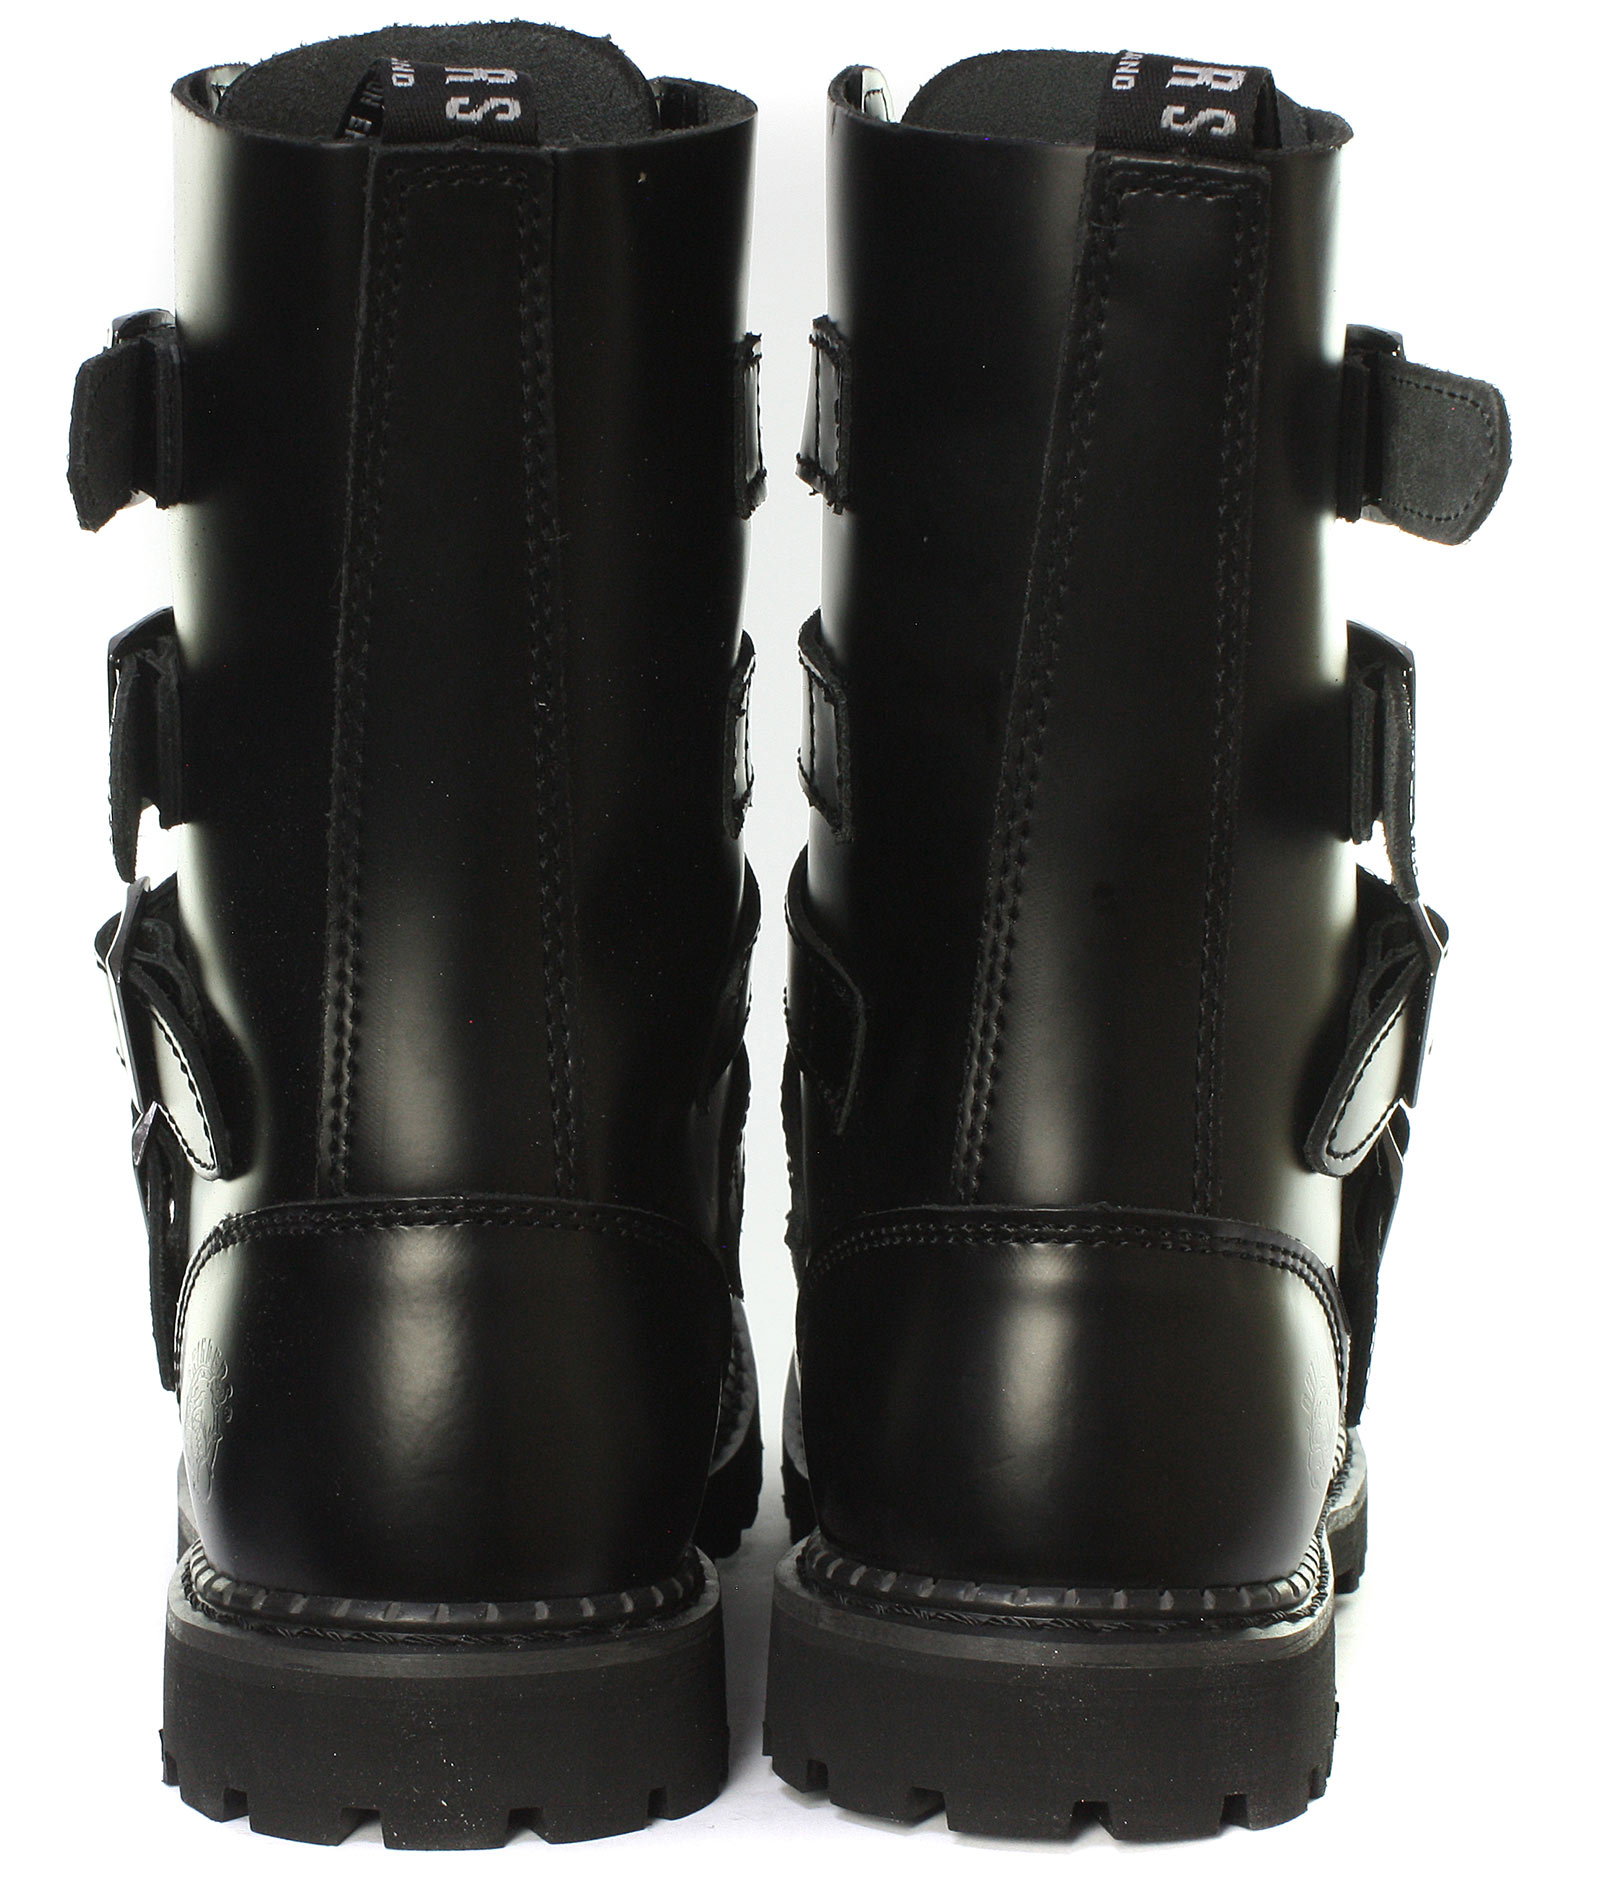 Grinders-Quad-CS-14-Eyelet-Buckle-Unisex-Steel-Toe-Derby-Boots-ALL-SIZES thumbnail 3